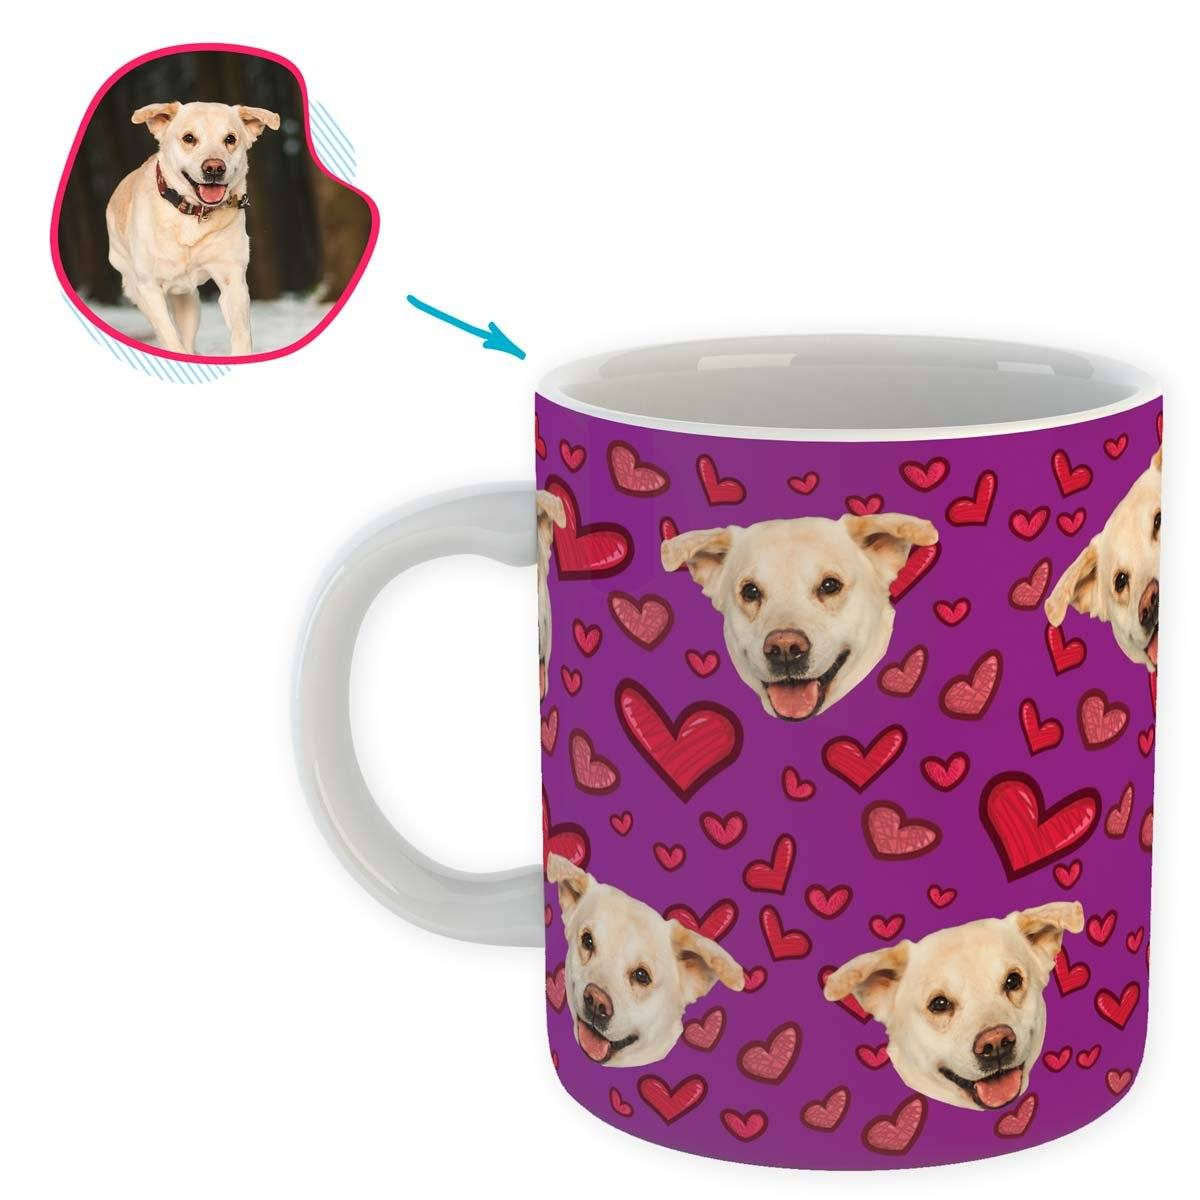 purple Heart mug personalized with photo of face printed on it